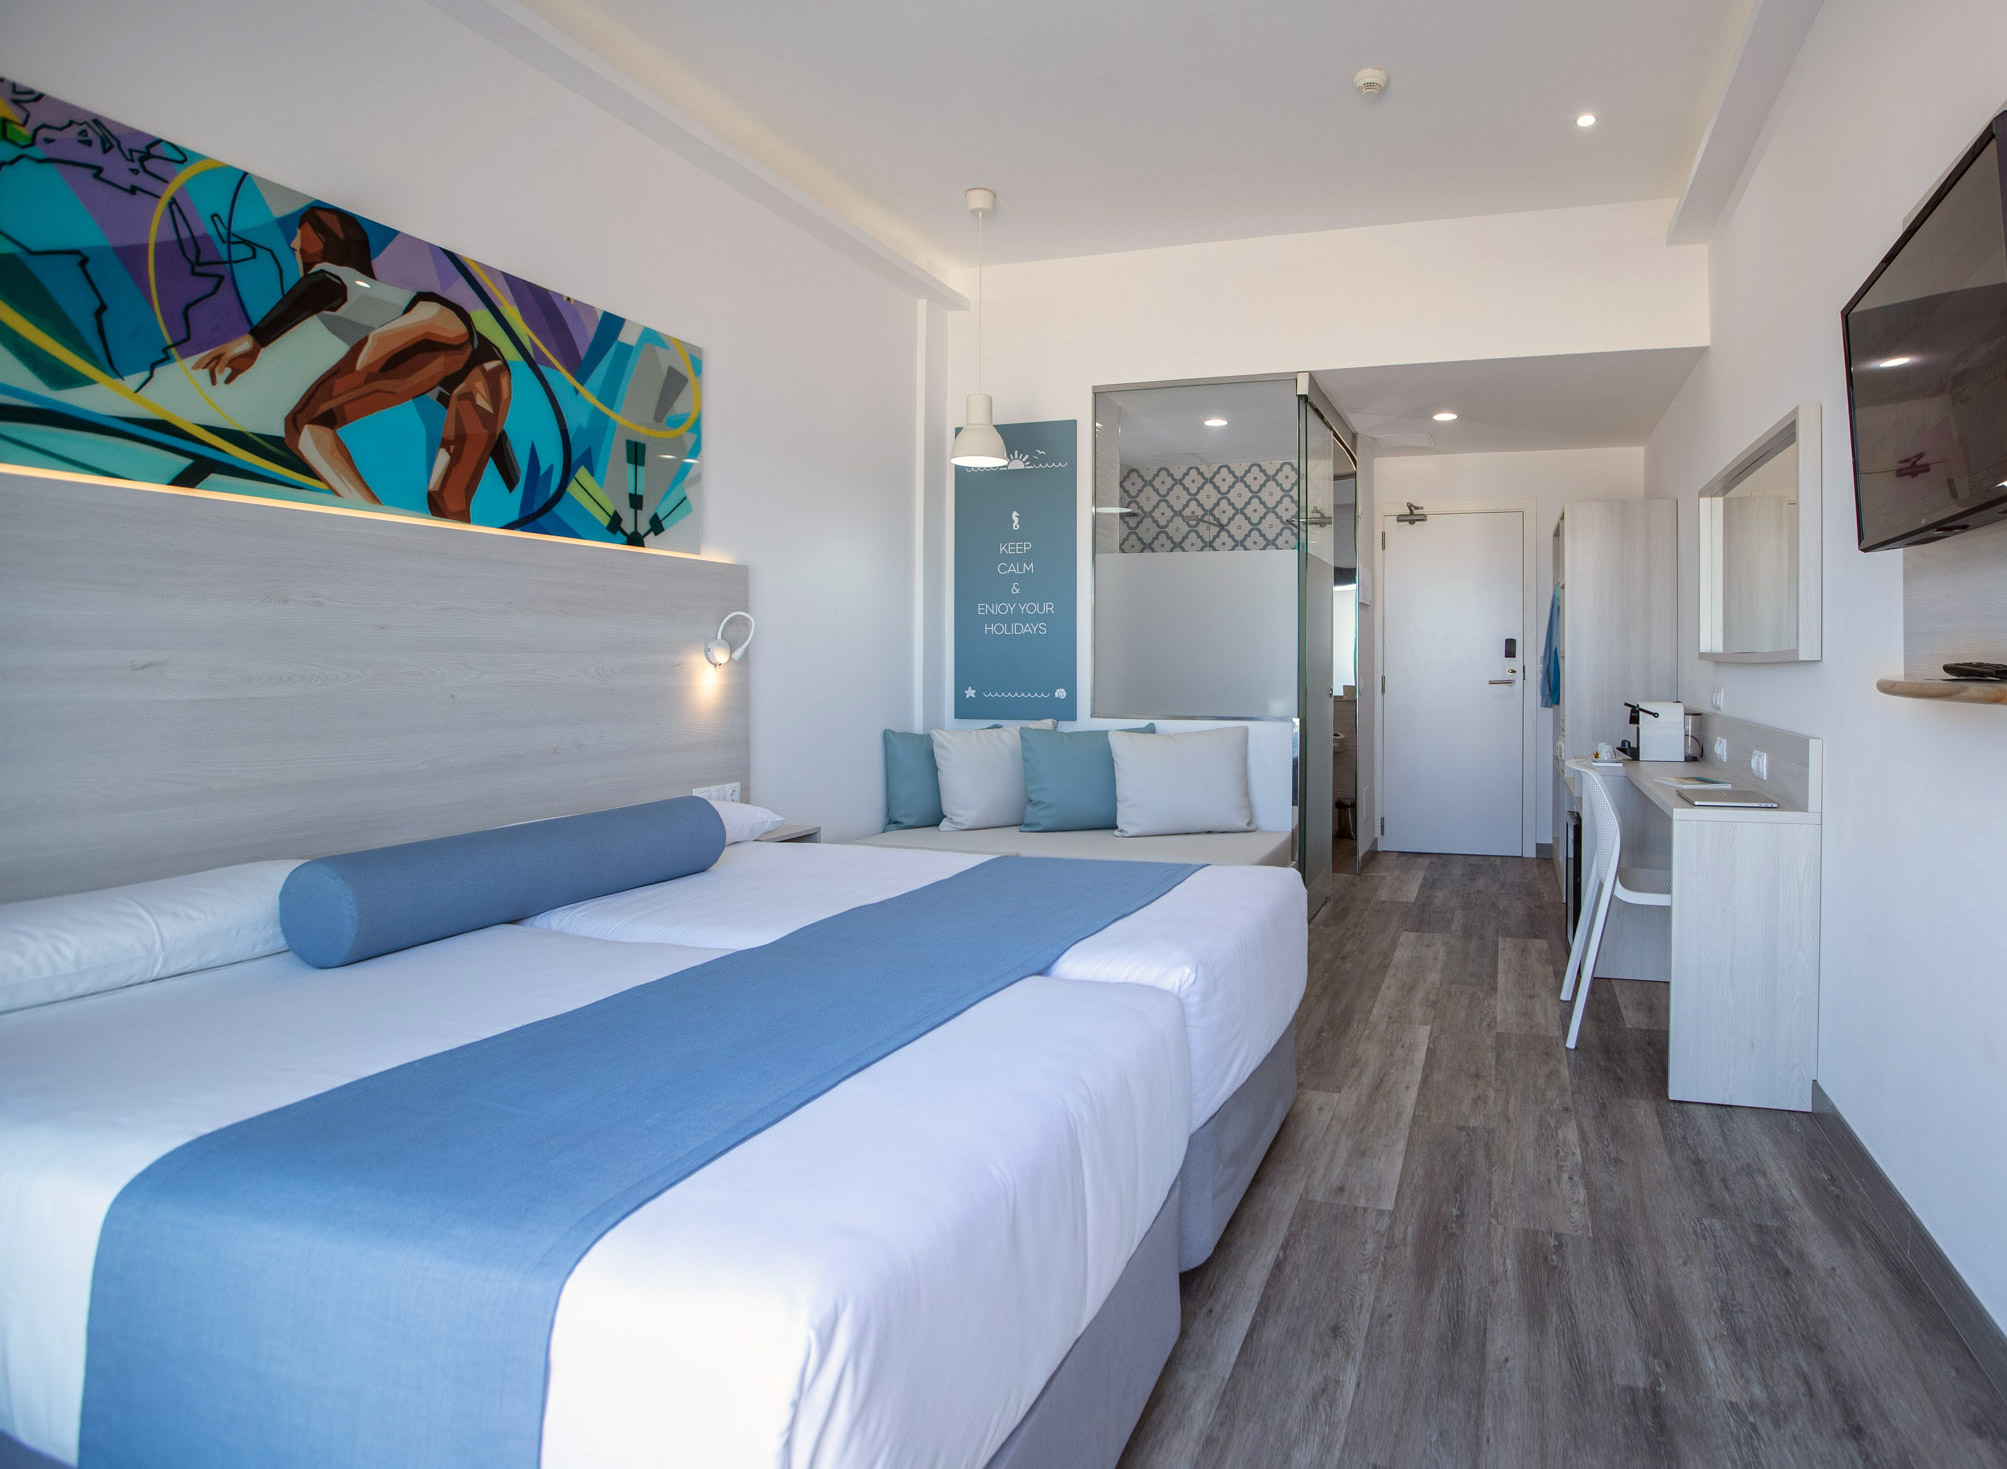 Surfing Dreams Doppelzimmer im Hotel Surfing Colors